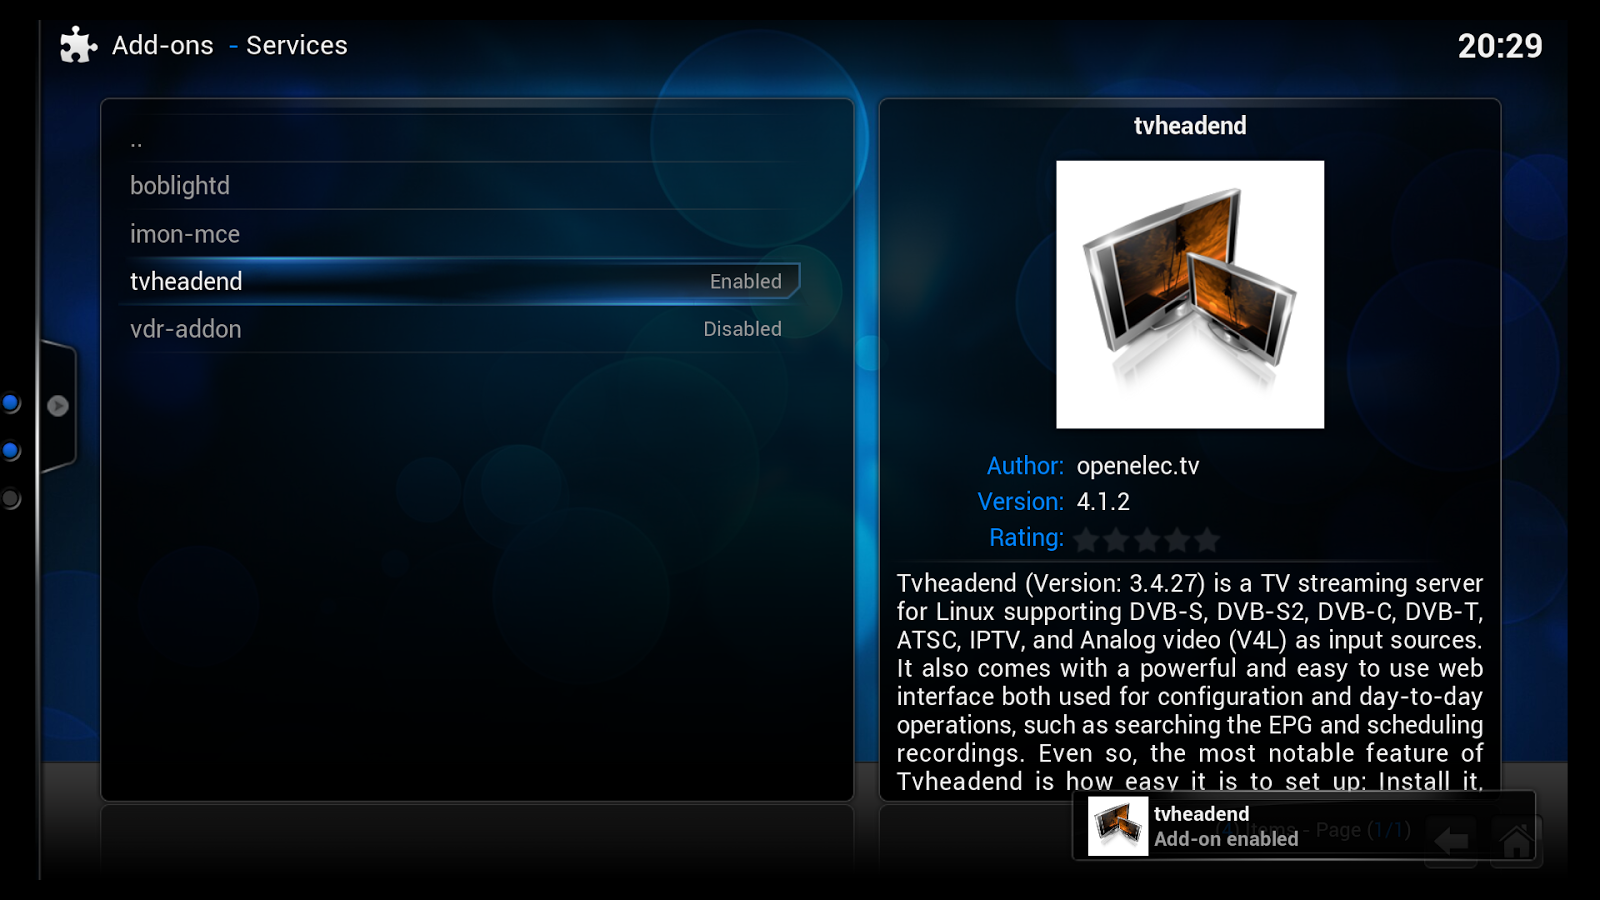 The NUC blog: Enabling Live TV in XBMC/OpenELEC